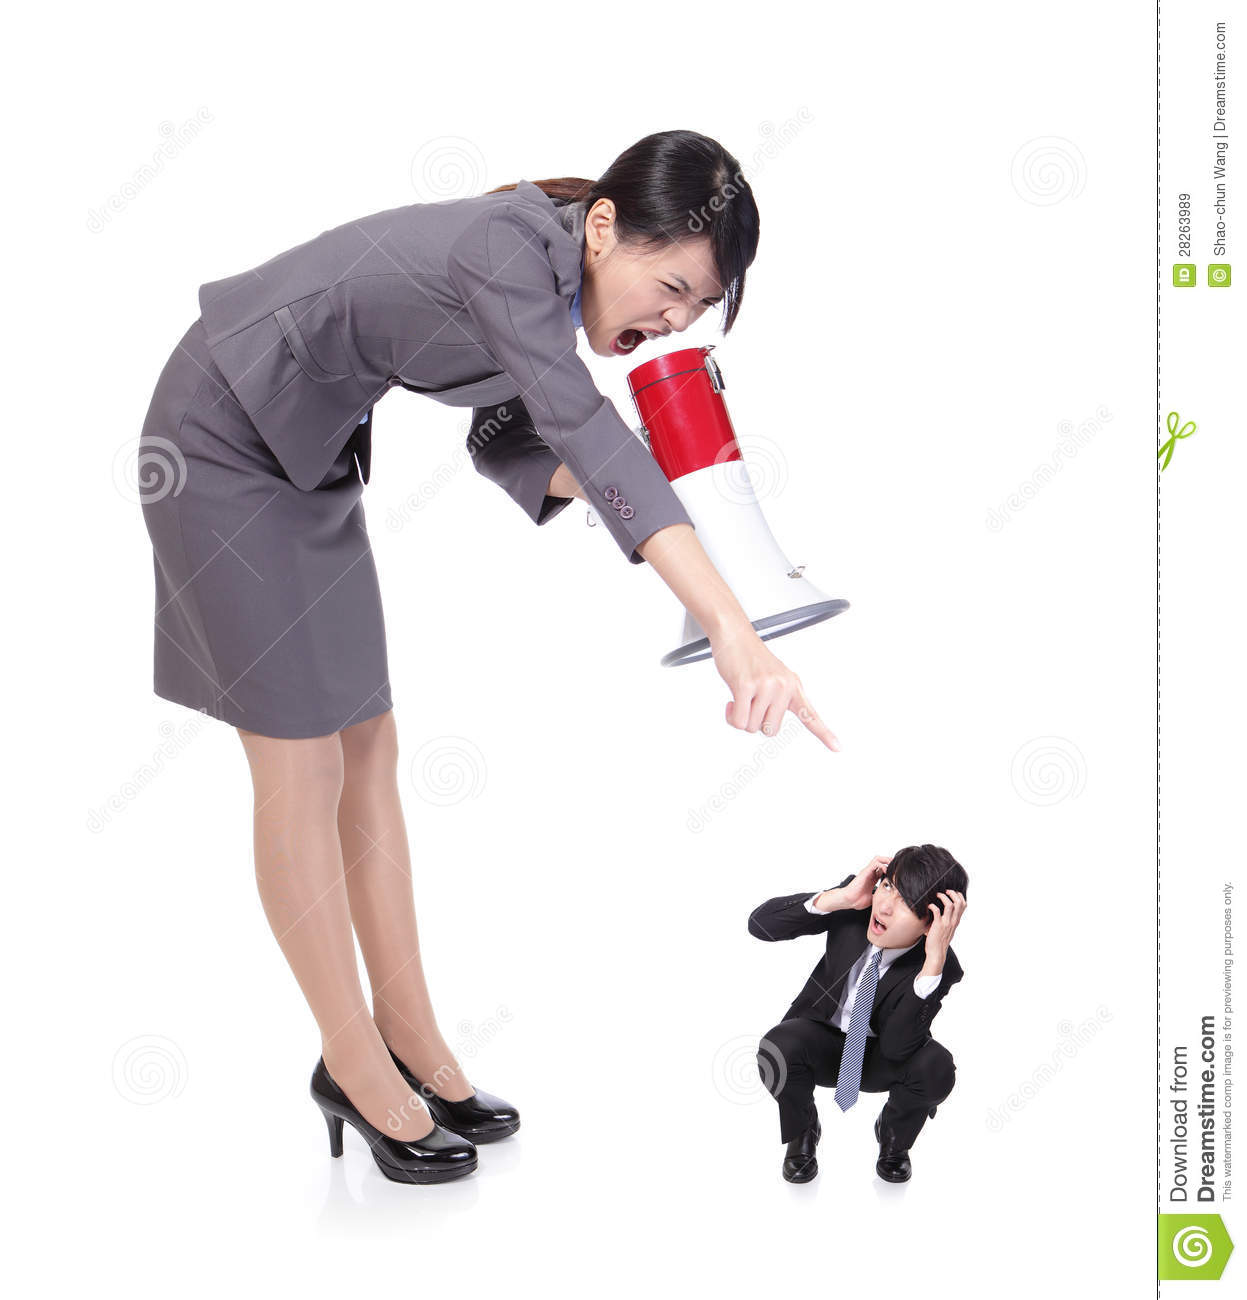 Angry Boss With Megaphone Yelling To Staff Royalty Free Stock ...